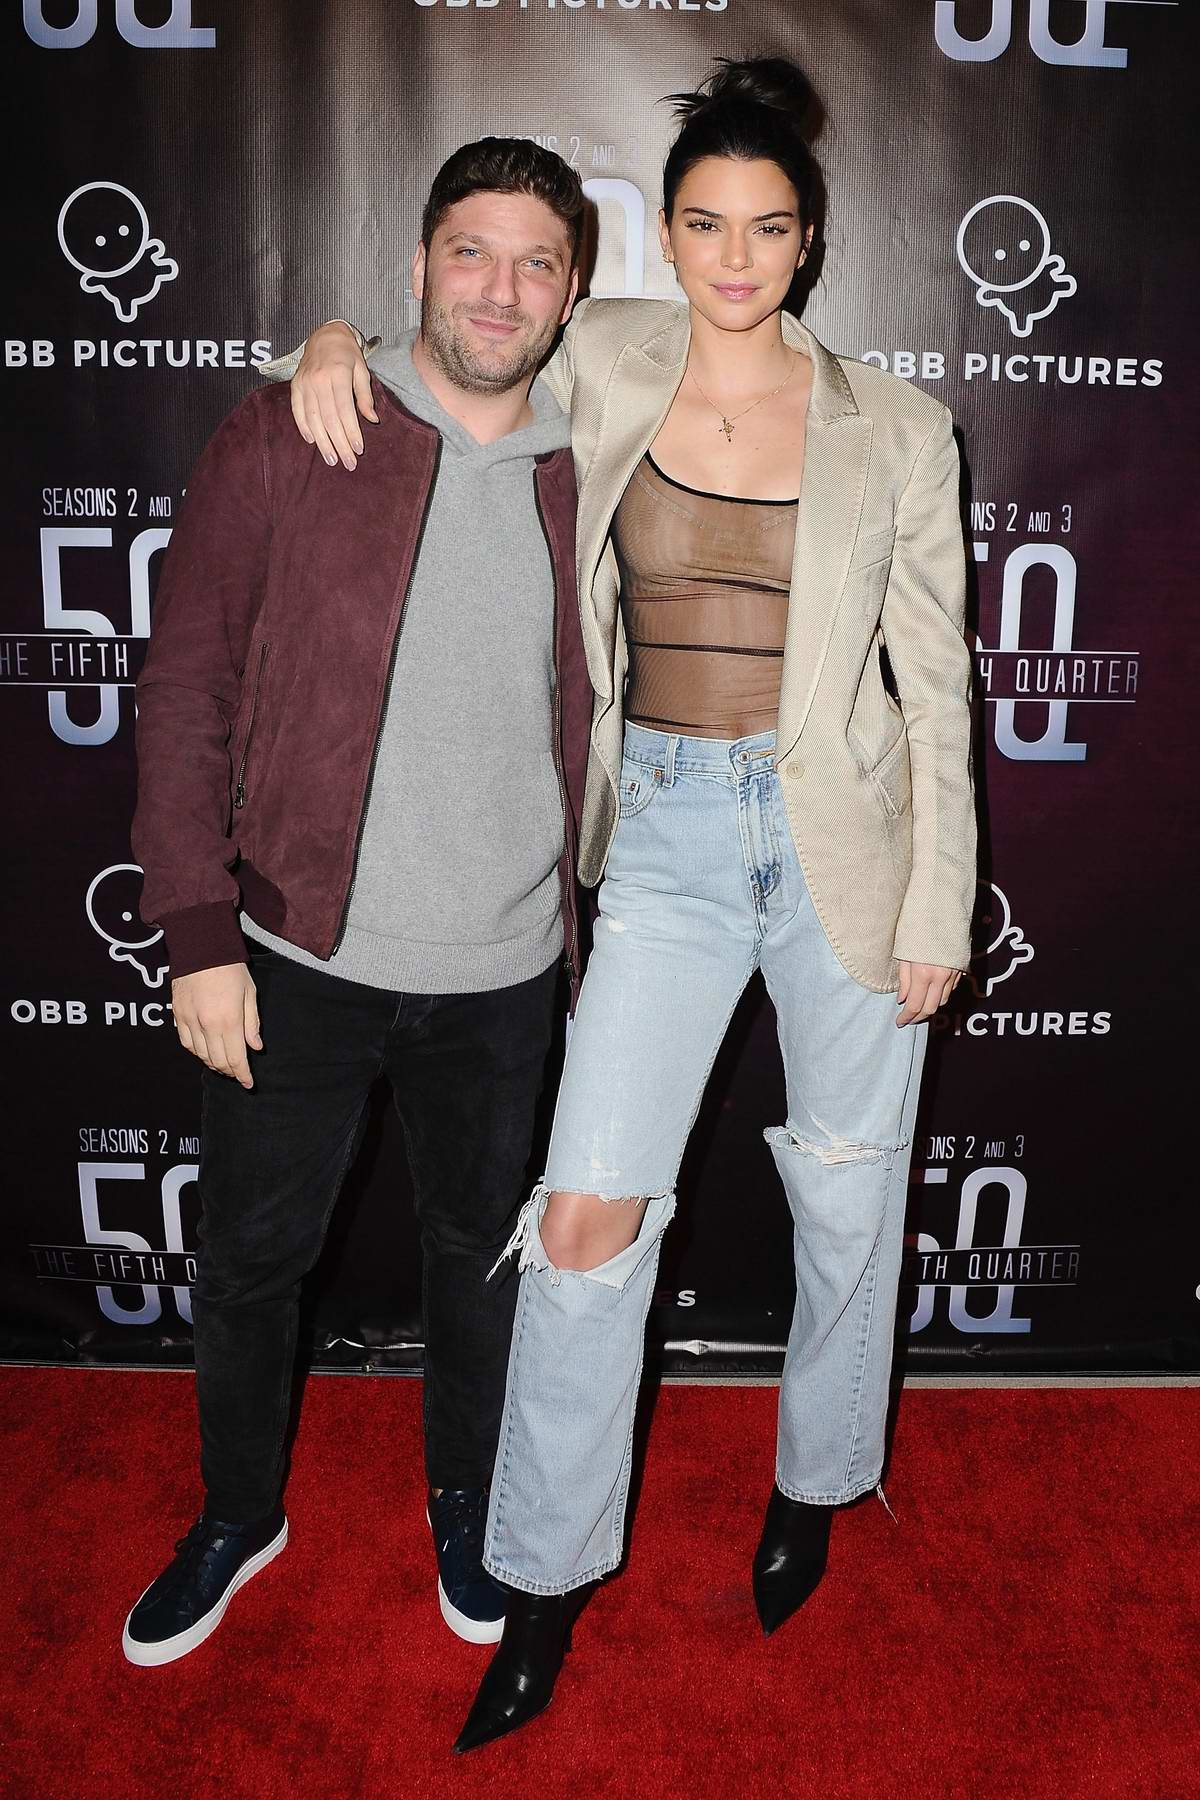 Kendall Jenner at the premiere of 'The 5th Quarter' at United Talent Agency in Beverly Hills, Los Angeles